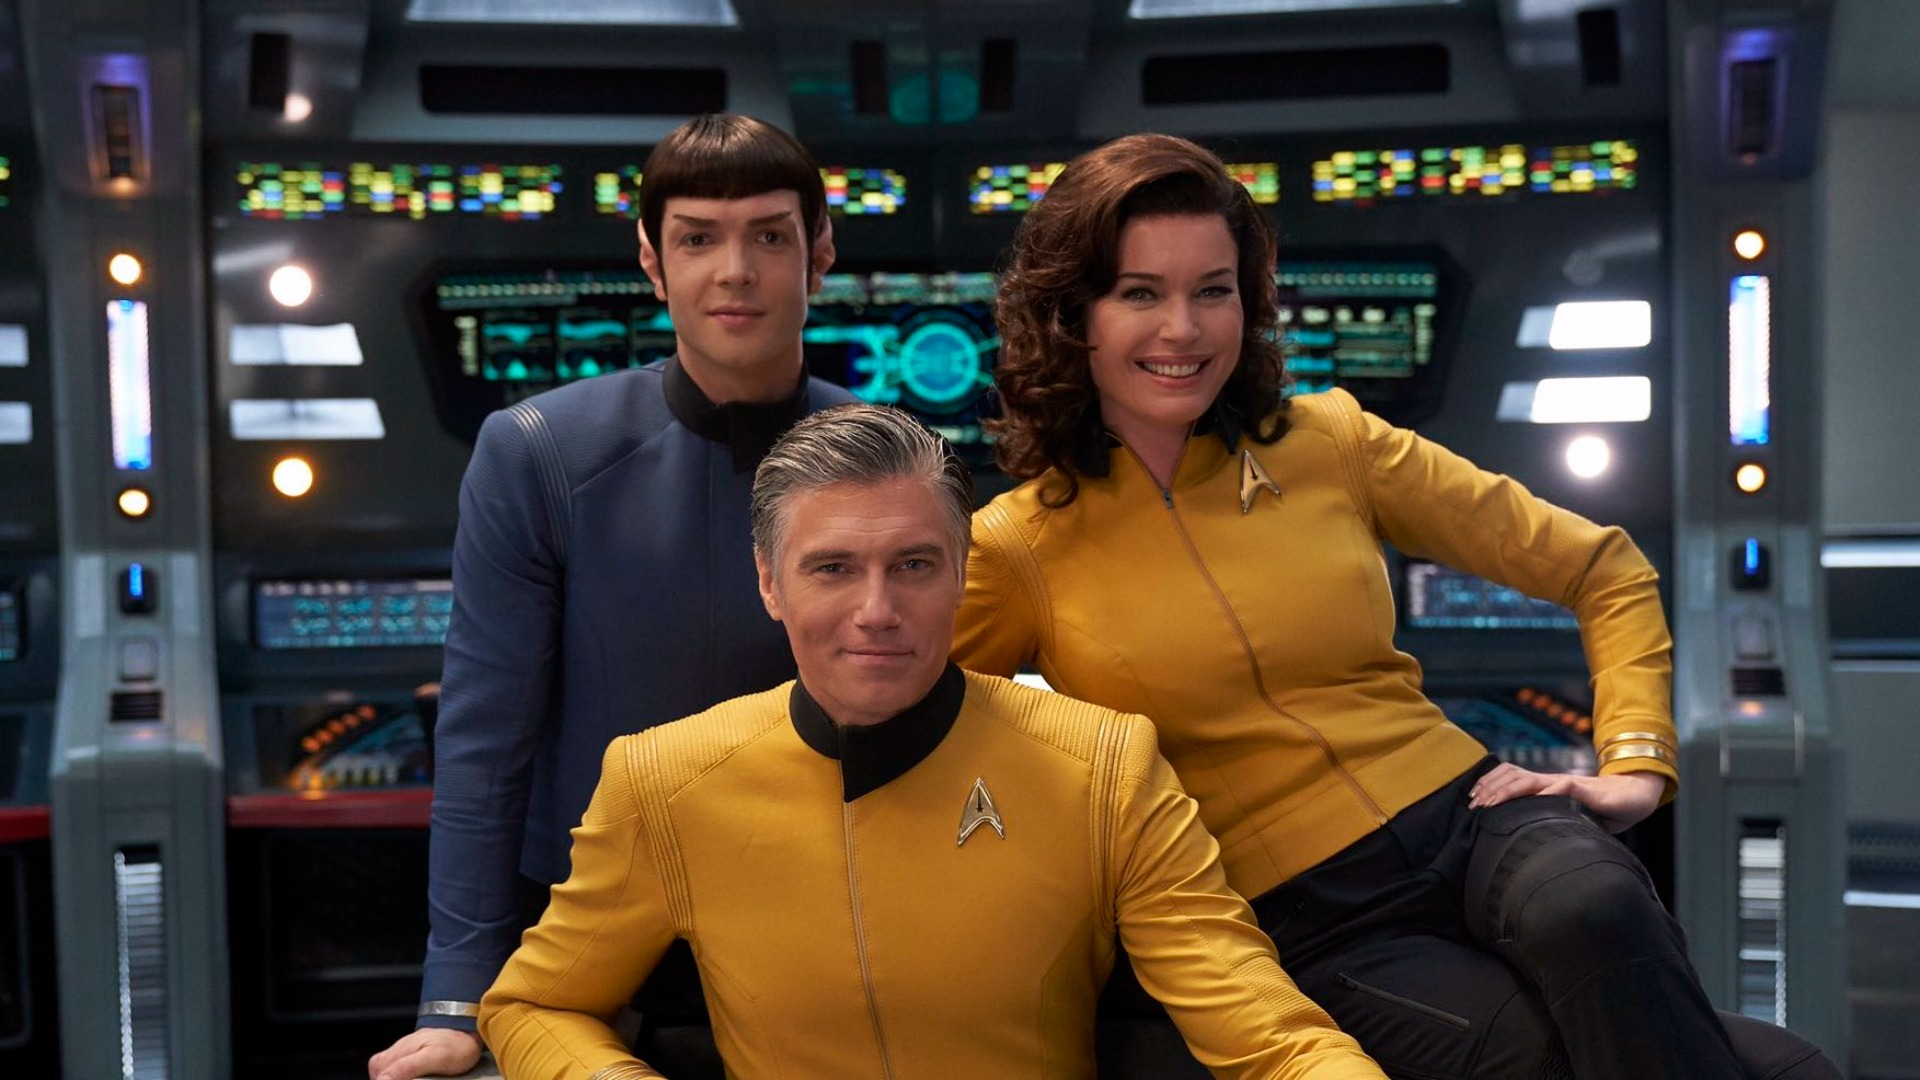 star trek strange new worlds cast